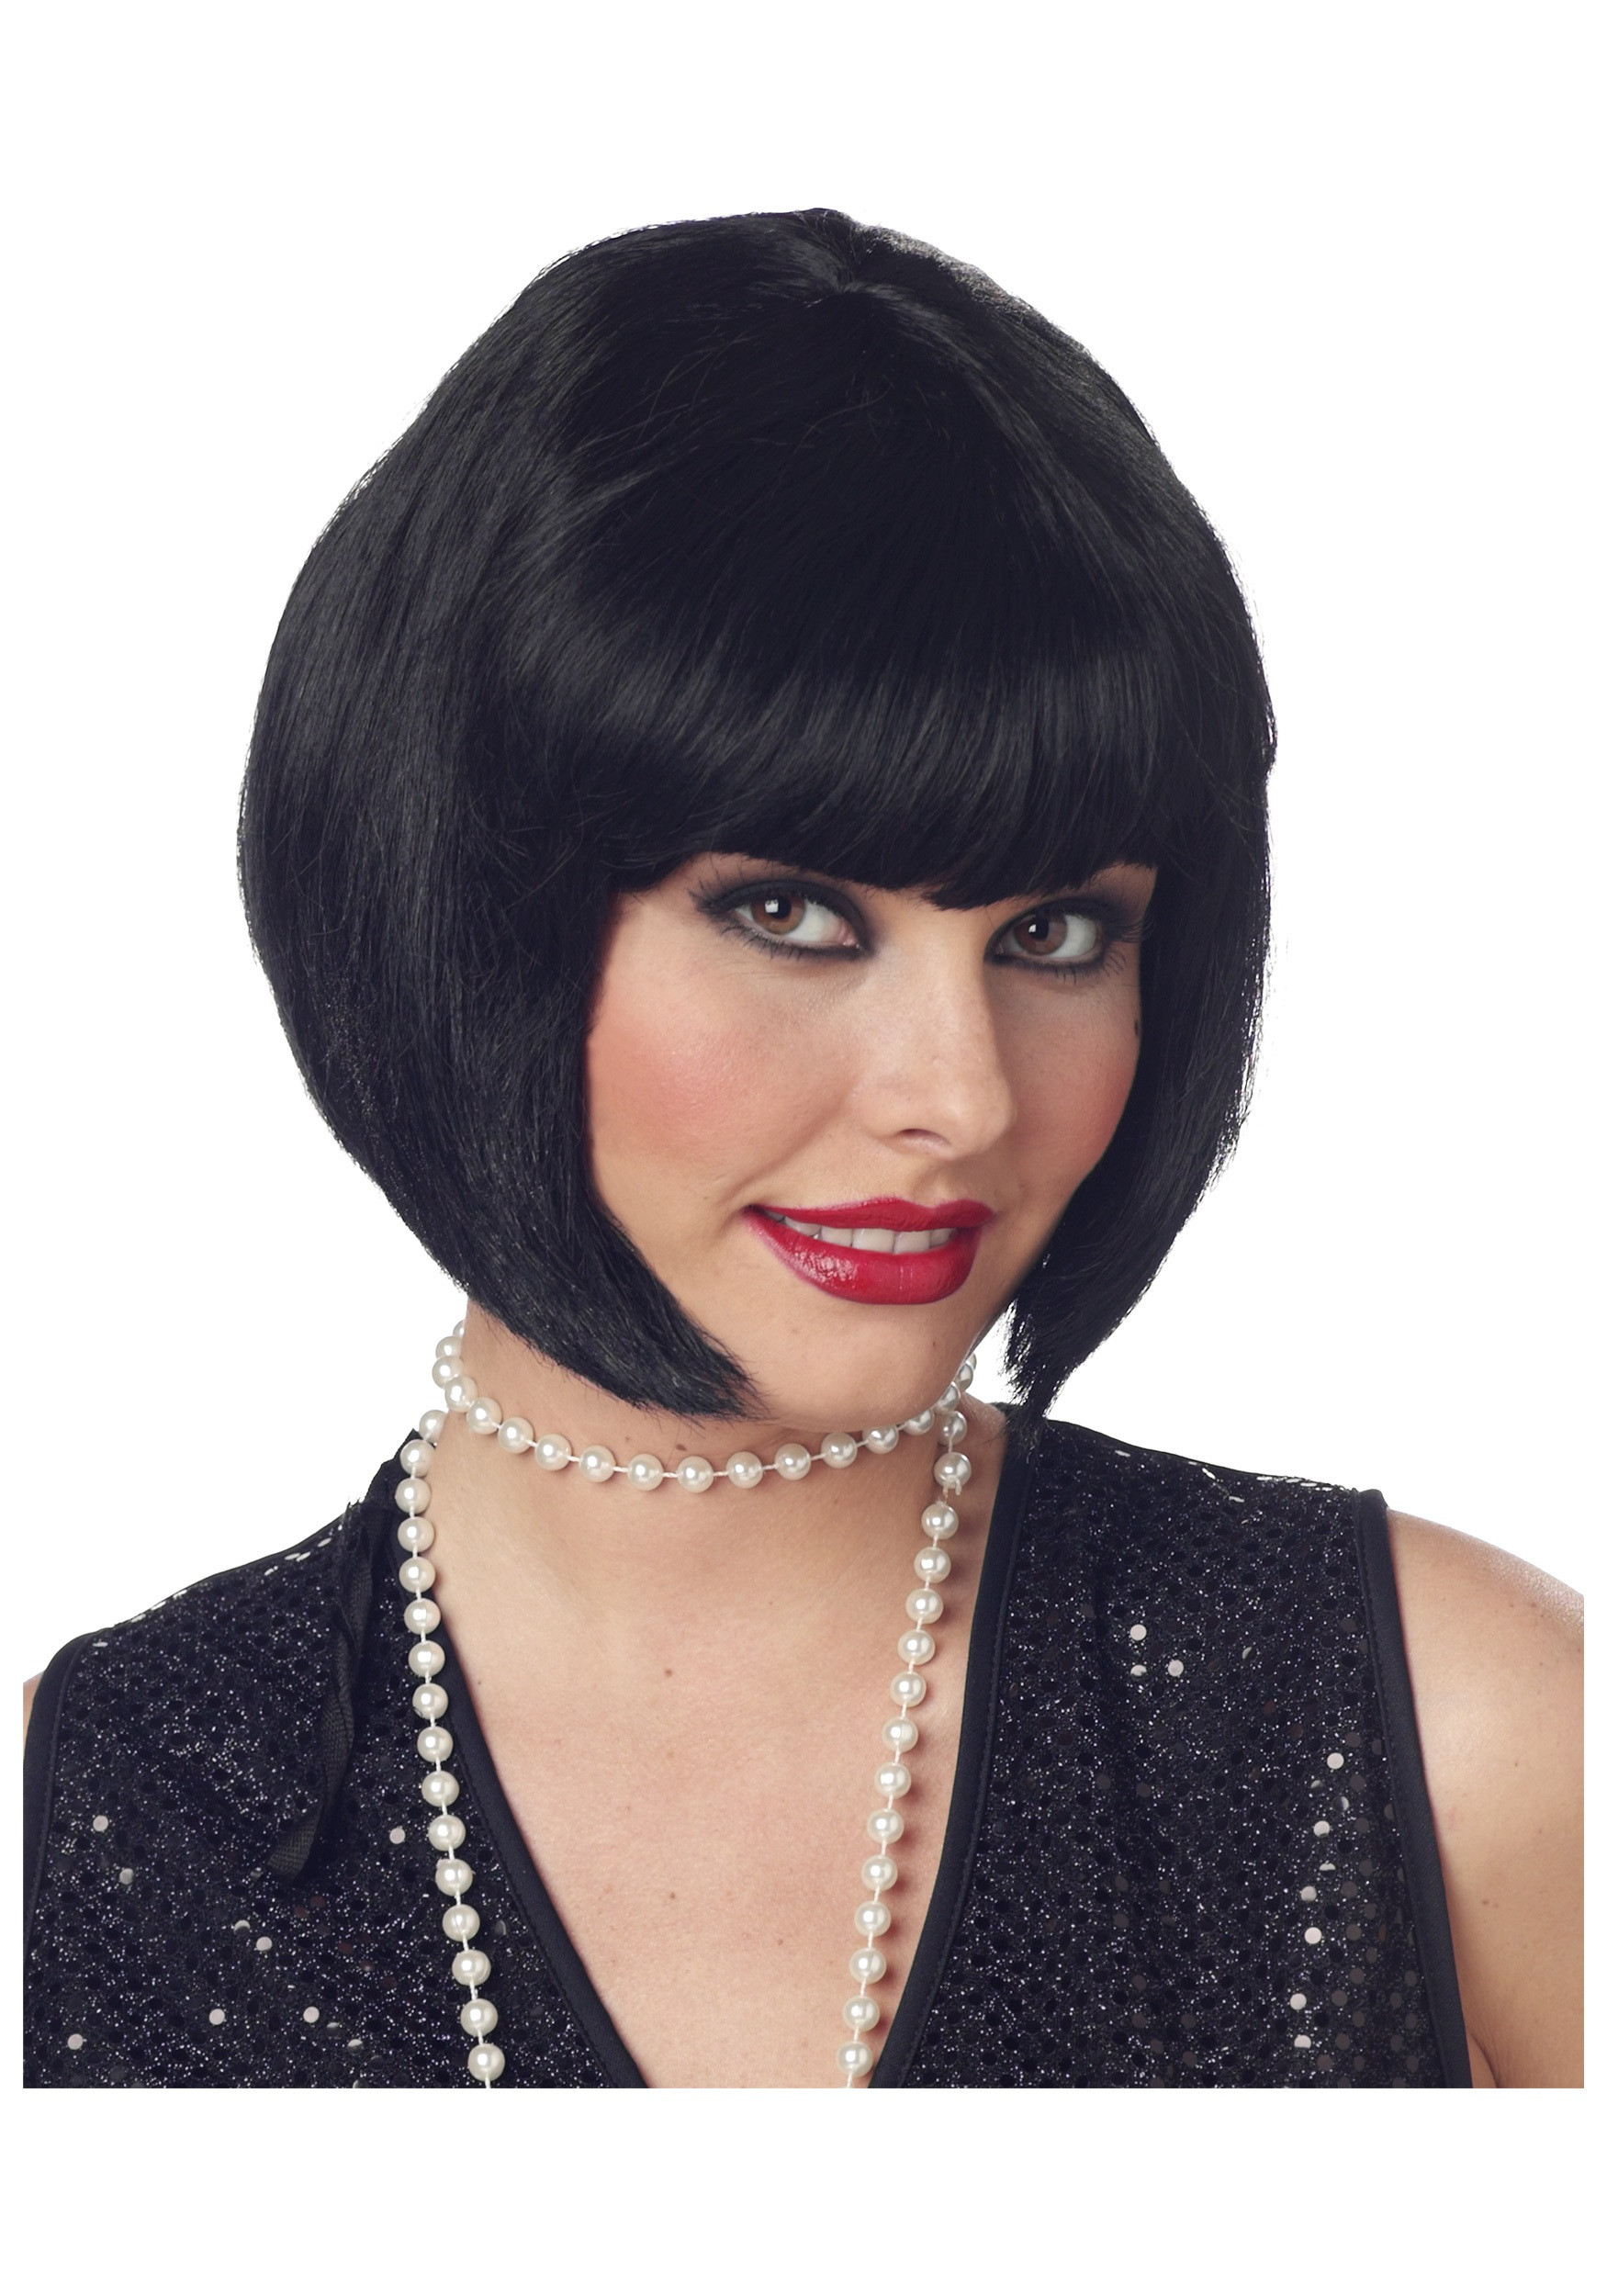 Short Black Hairstyle Wigs  Short Black Bob Wig Flapper Hair Styles Wigs